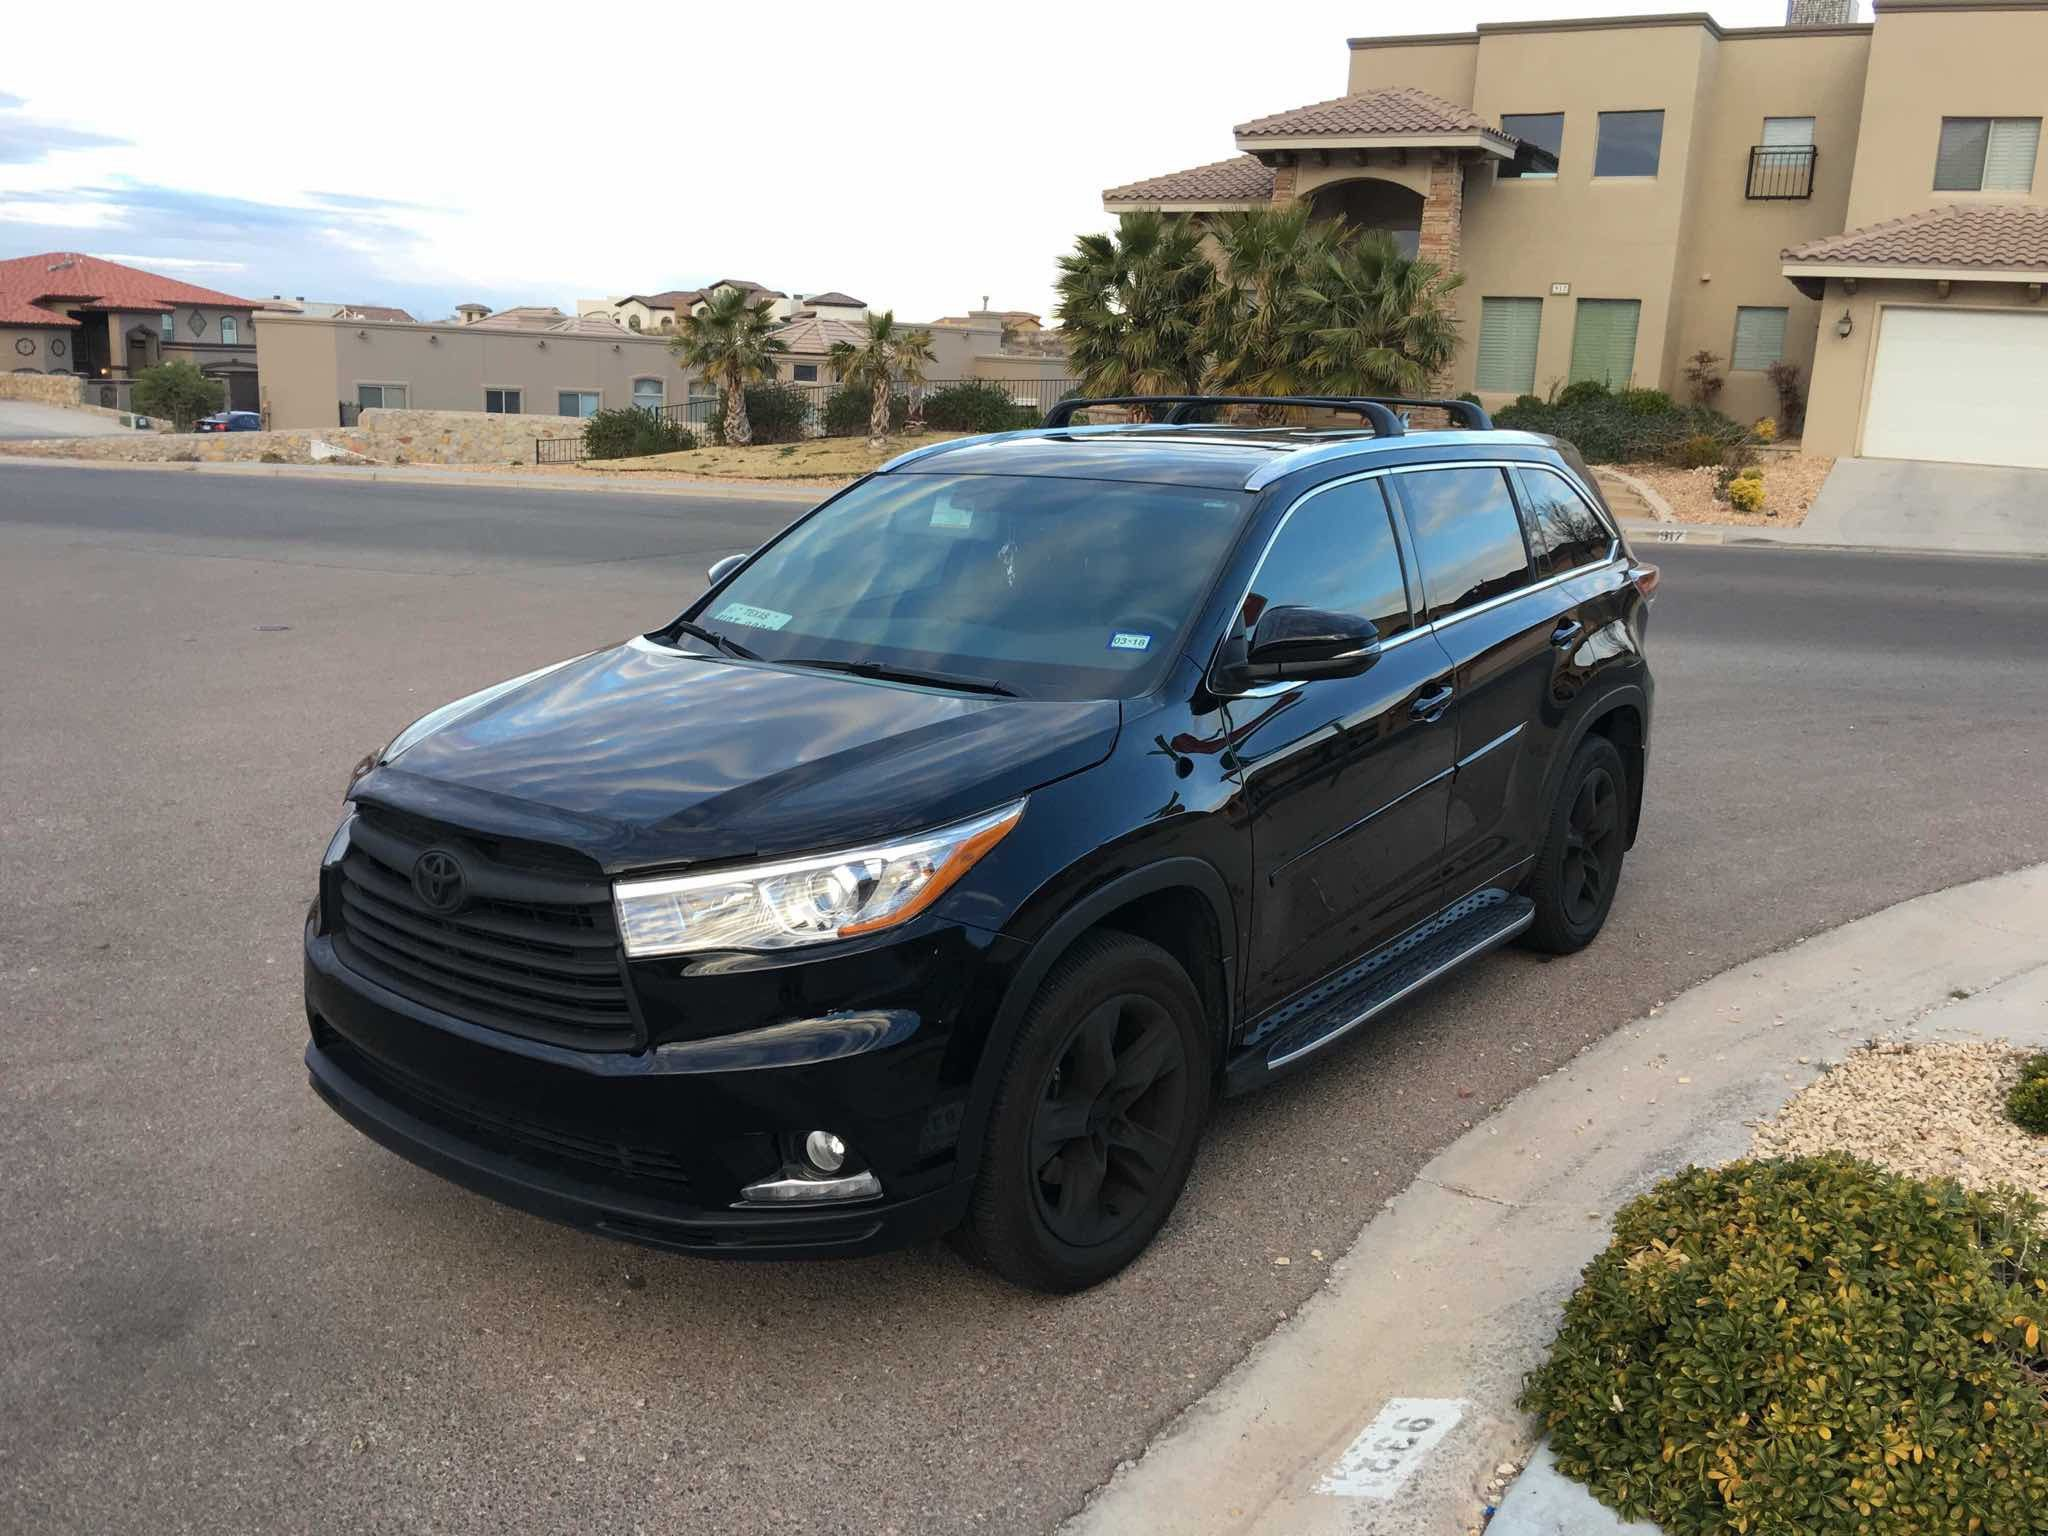 2018 Toyota Highlander Black Grill Inspirational How Can I My 17 Xle To Have A Like The Se